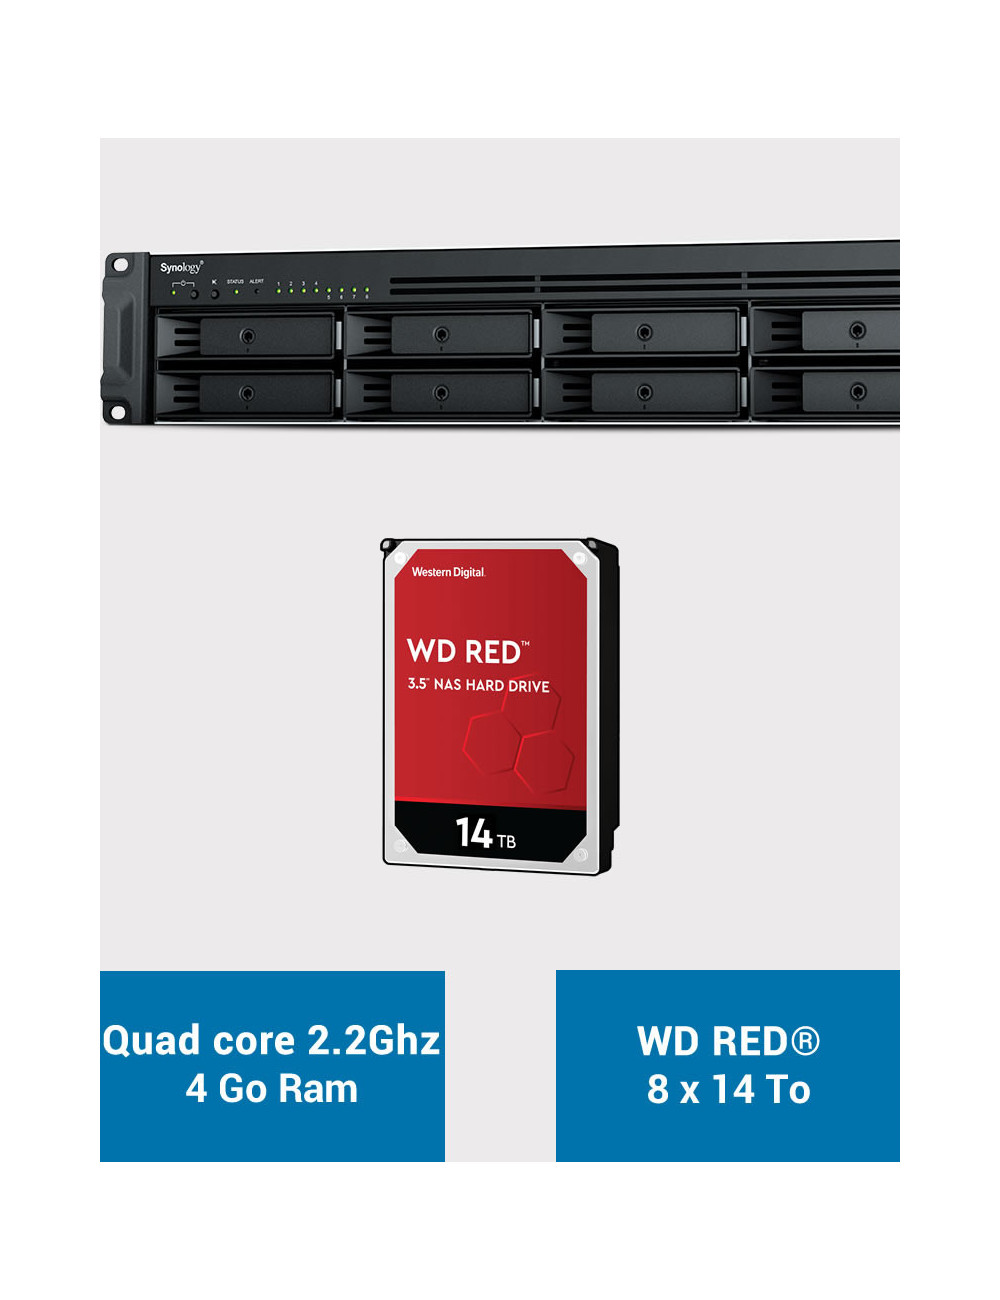 Synology RS1221+ Serveur NAS Rack WD RED 112To (8x14To)